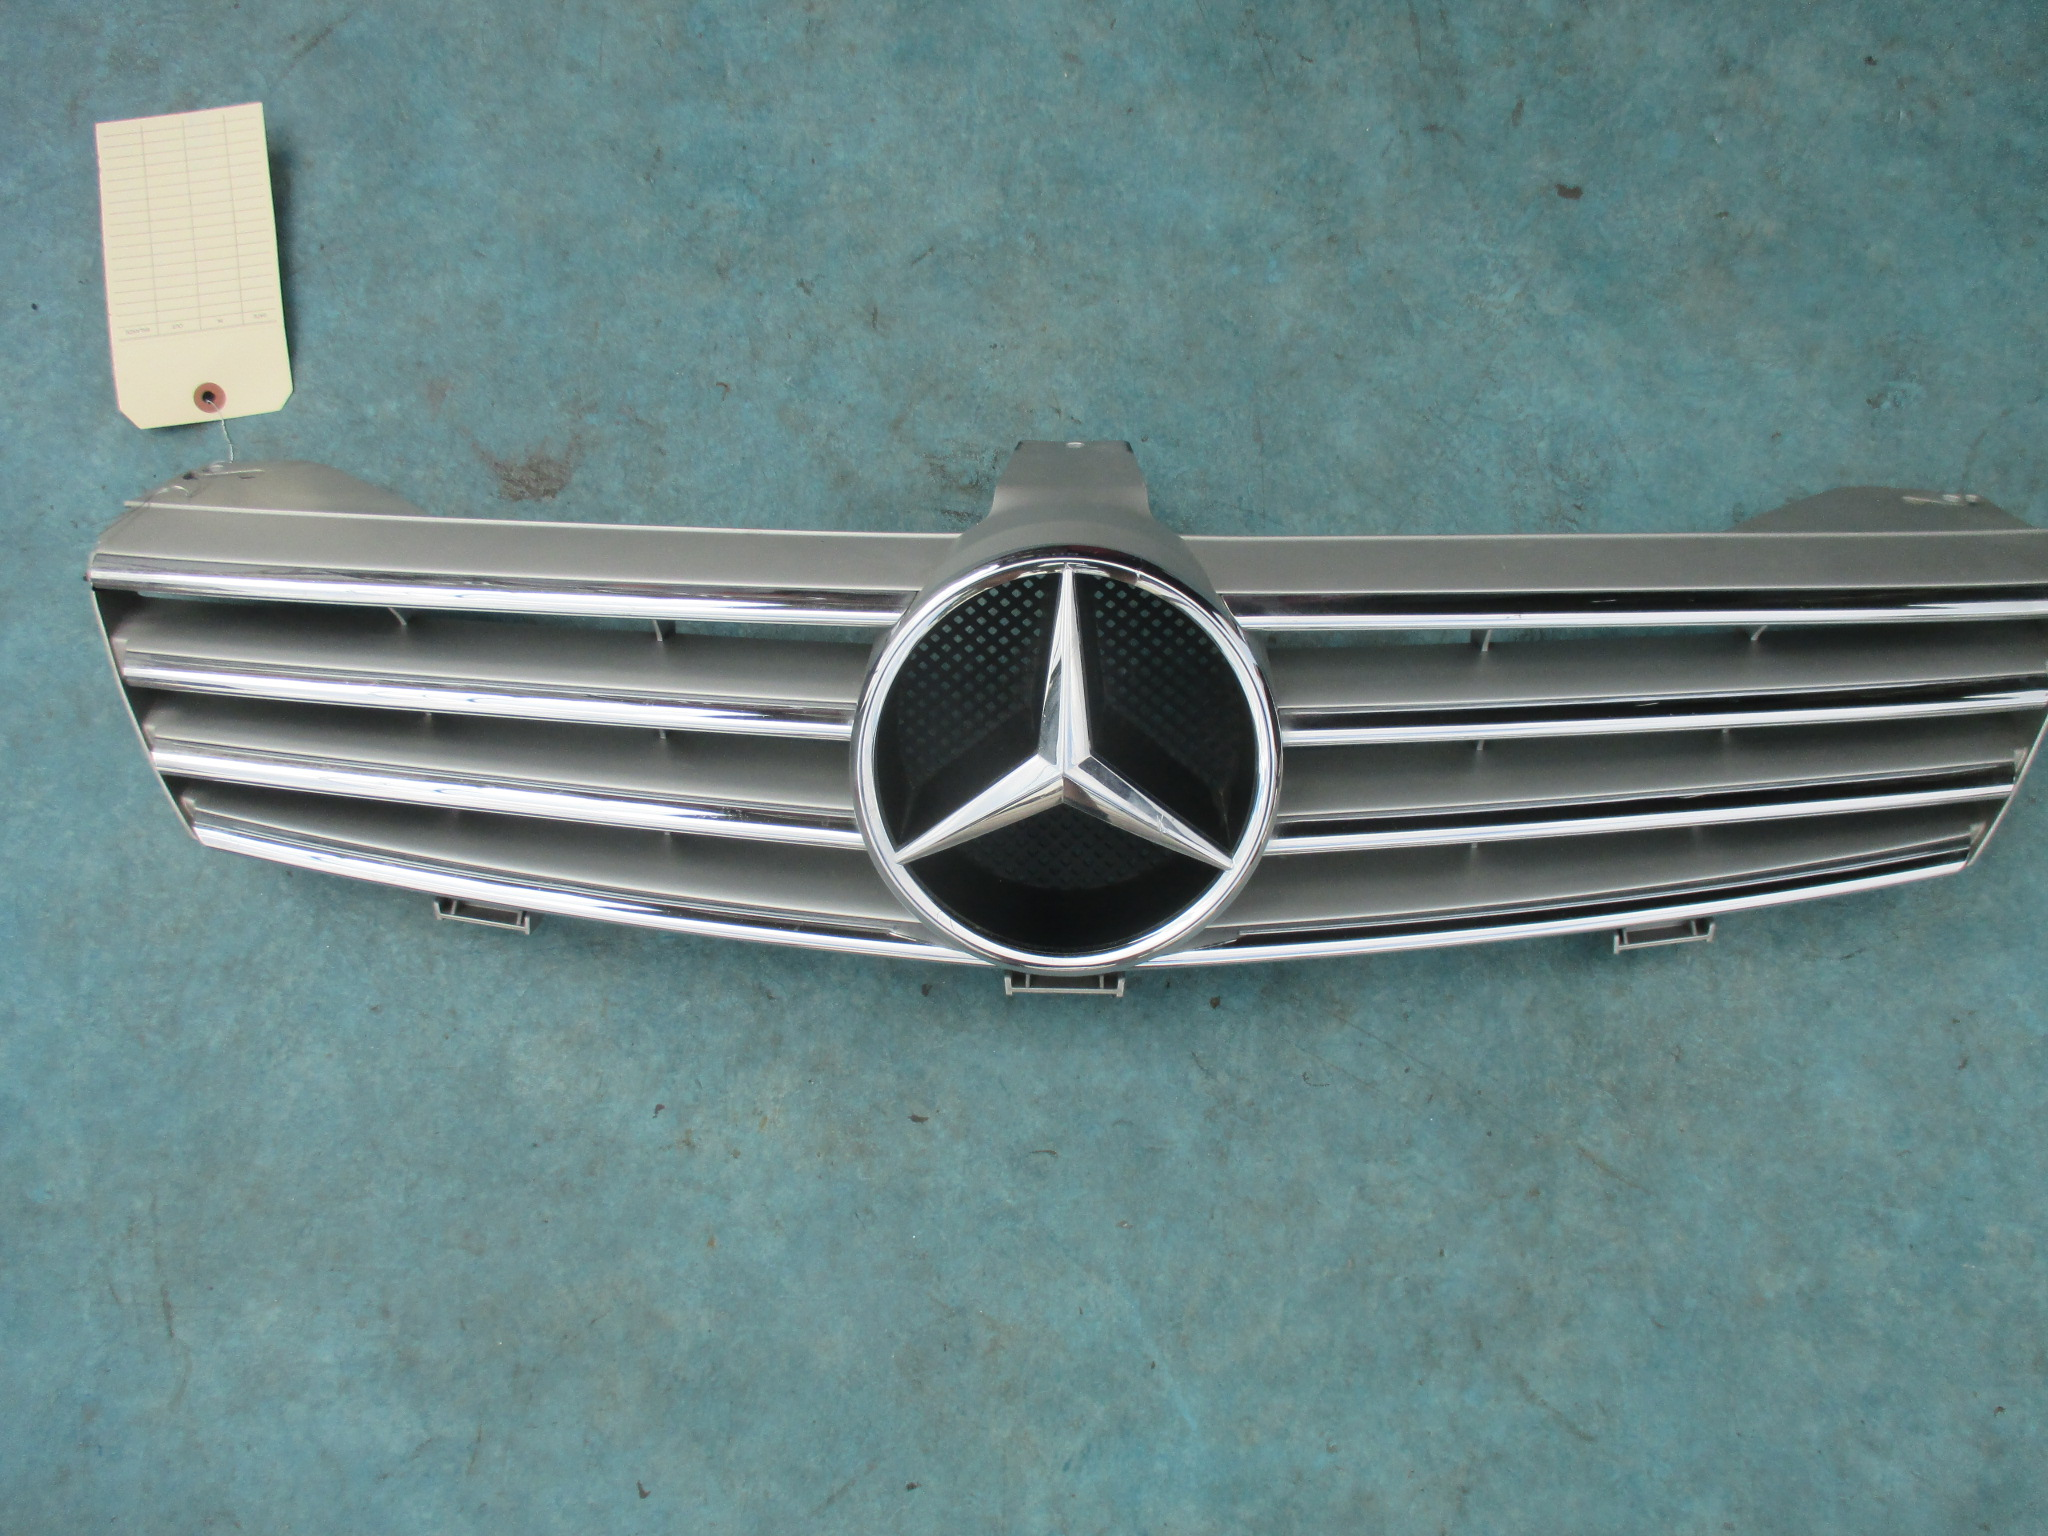 Origianal mercedes benz cls550 cls55 cls front grille oem for Mercedes benz oem parts wholesale